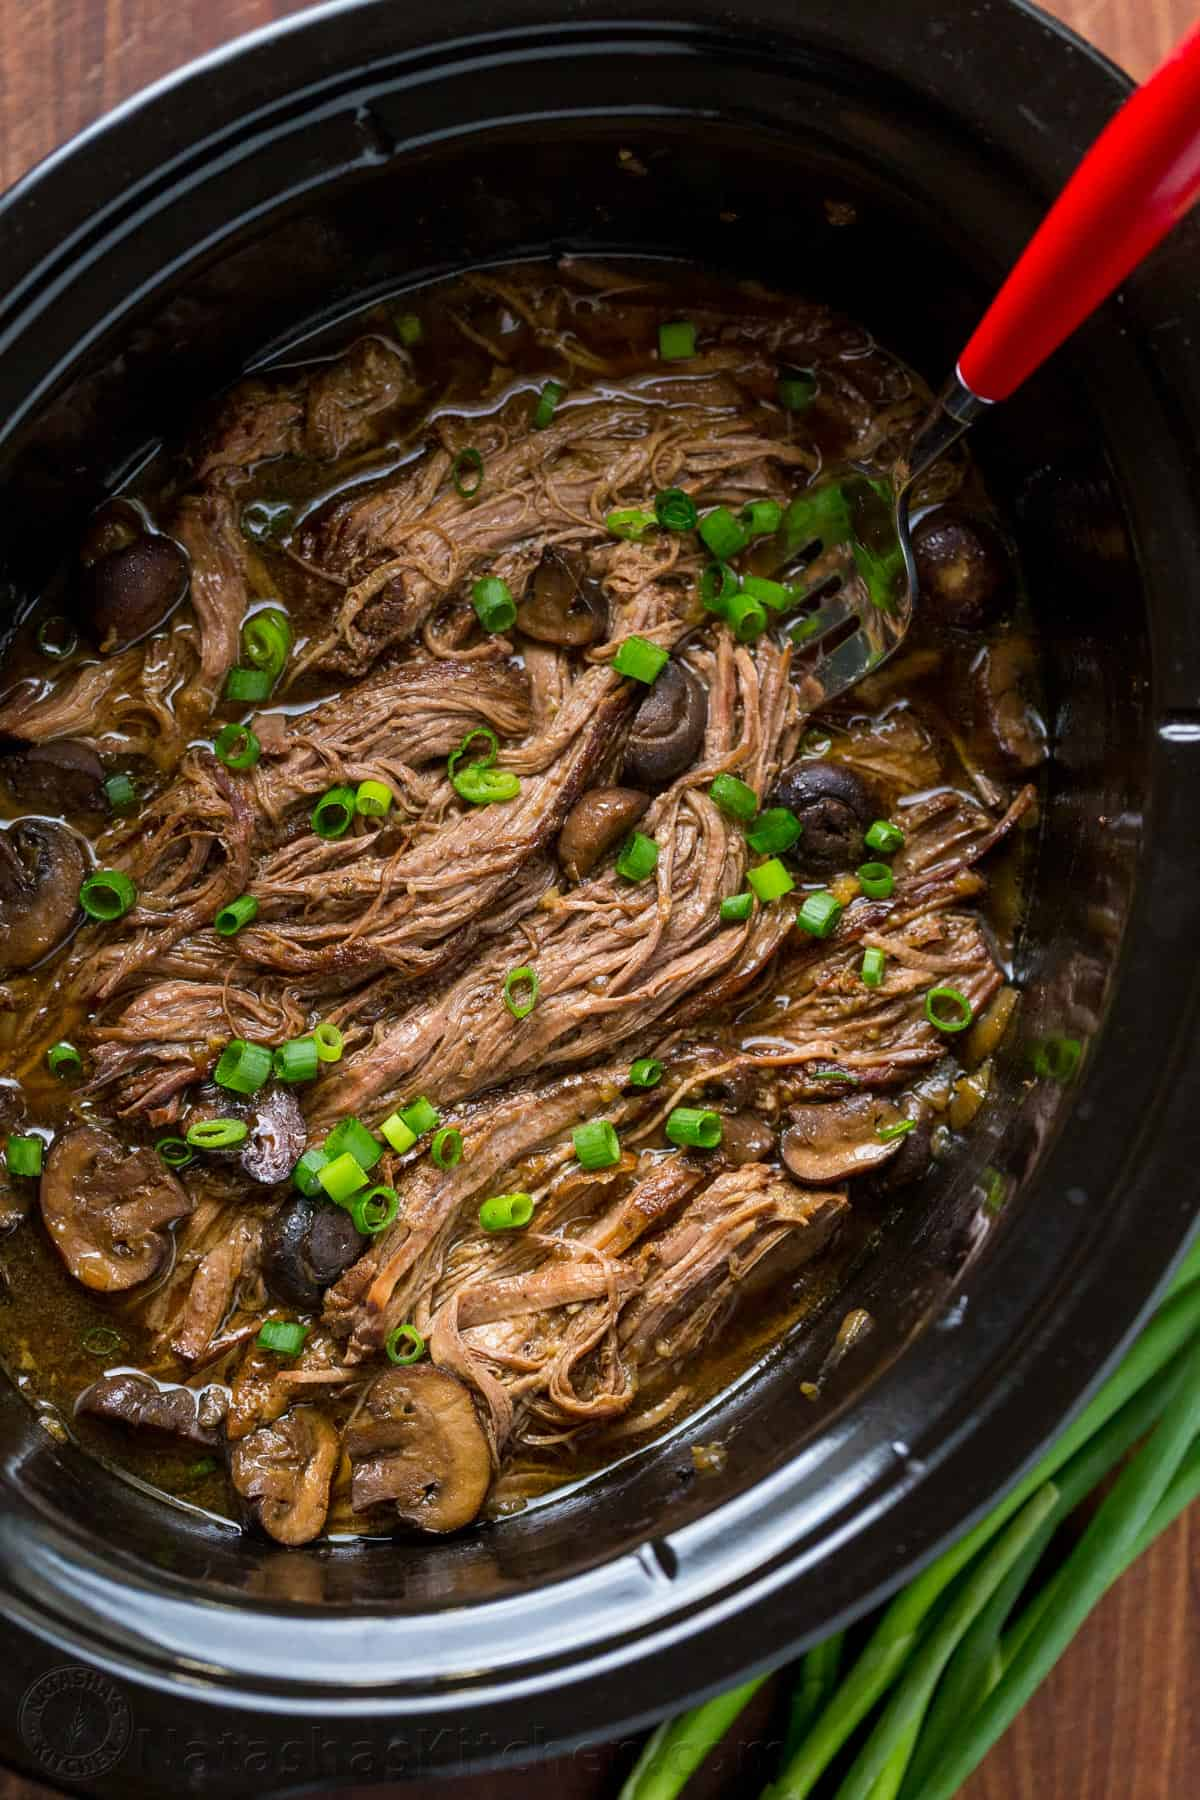 Brisket Food Network Slow Cooker